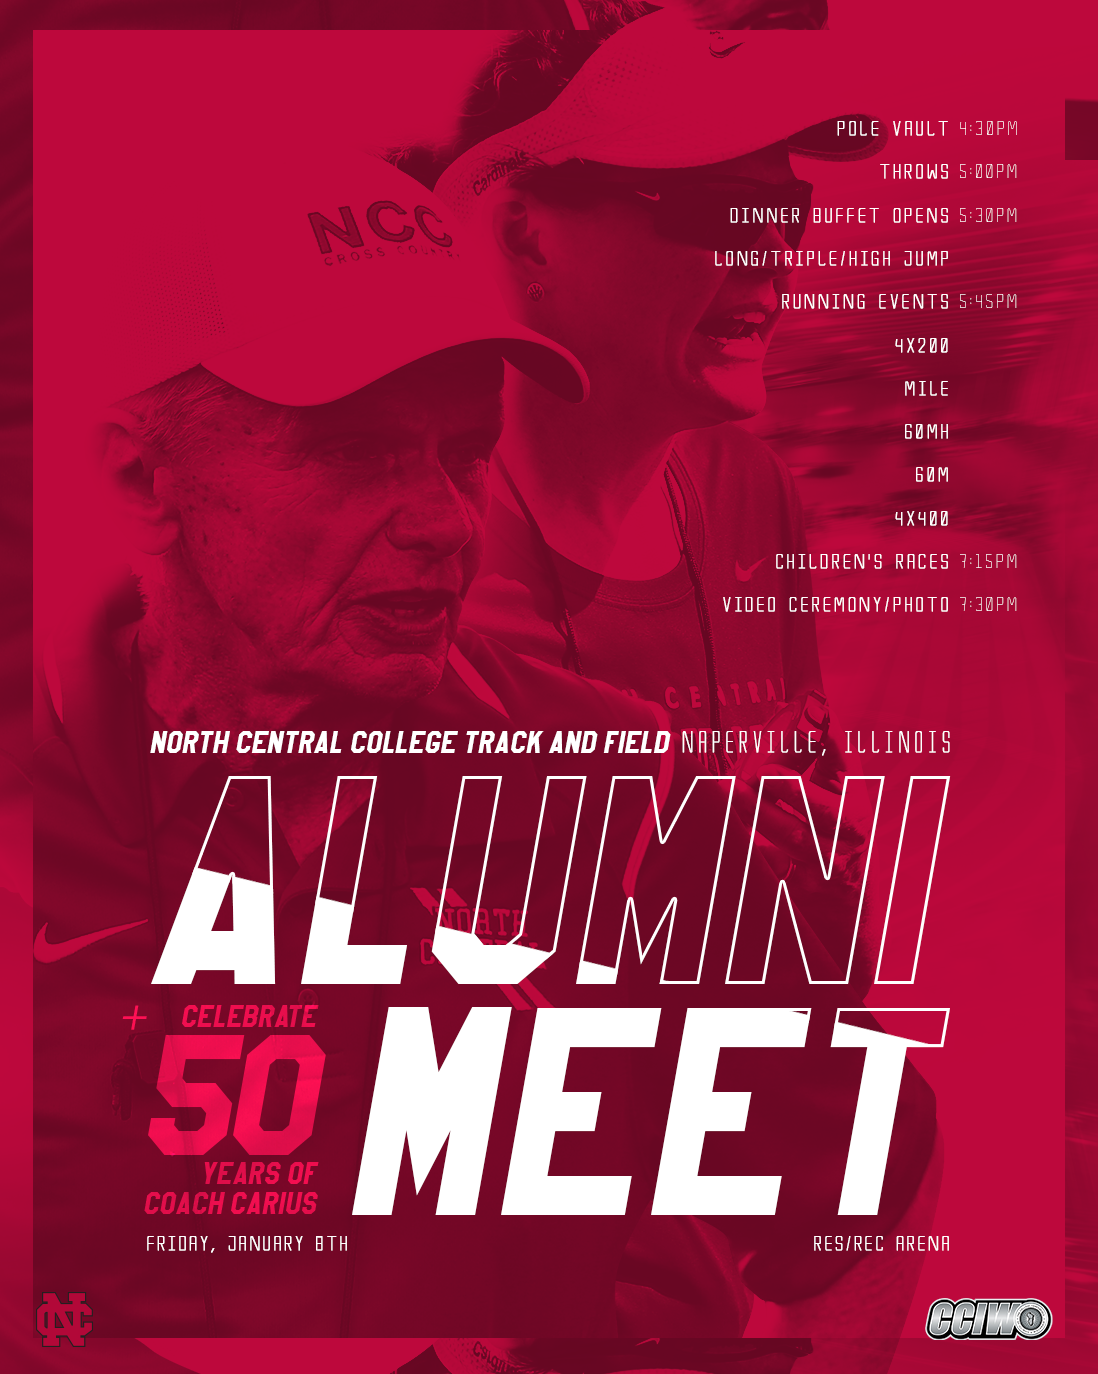 2016 Ncc Track And Field Alumni Meet Poster On Behance